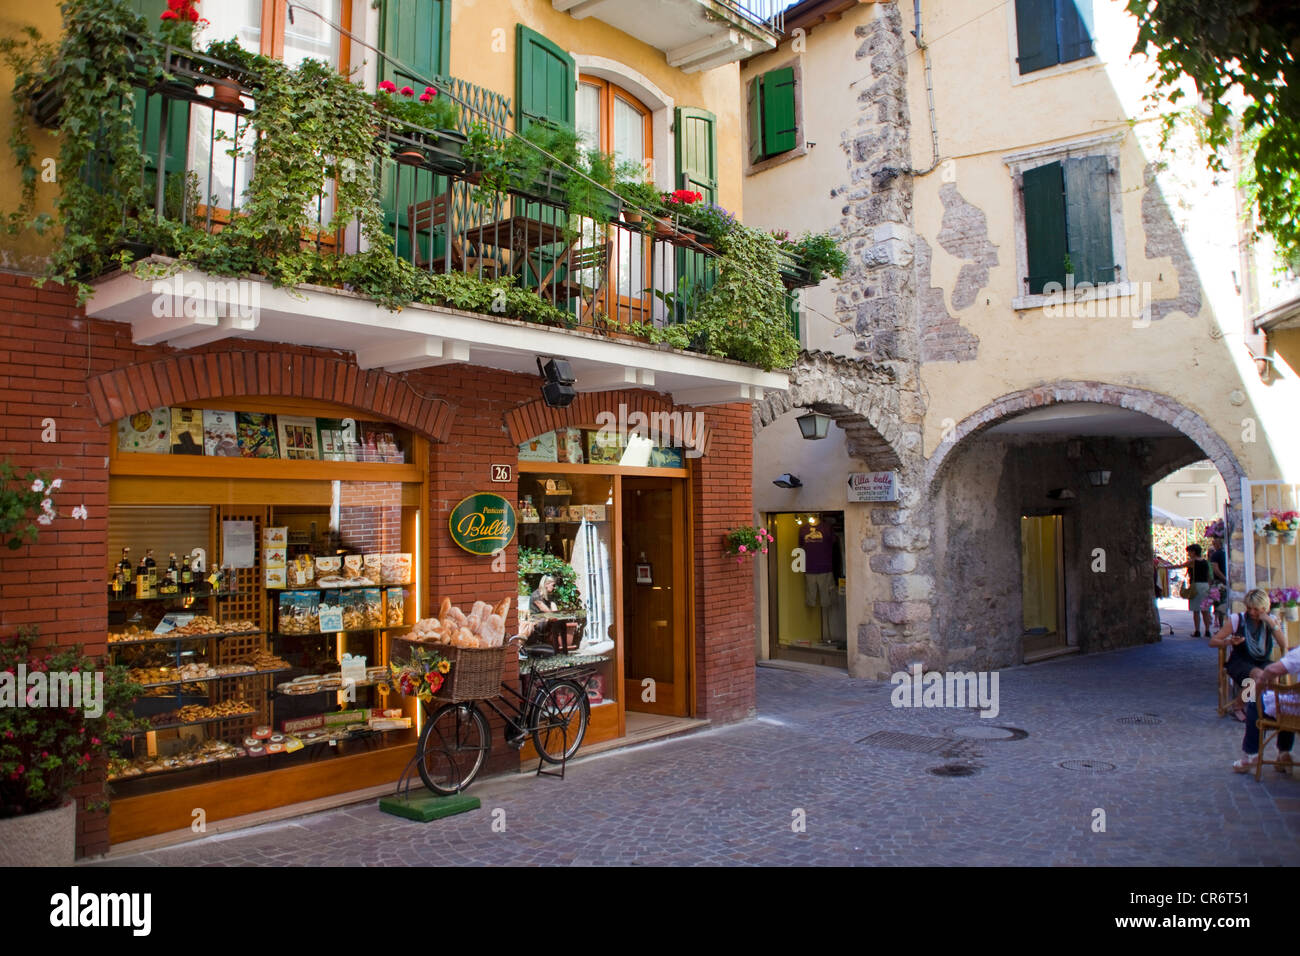 Bicycle with bread basket in front of a bakery shop, alley in Garda, Lake Garda, Verona Province, Veneto, Italy, - Stock Image